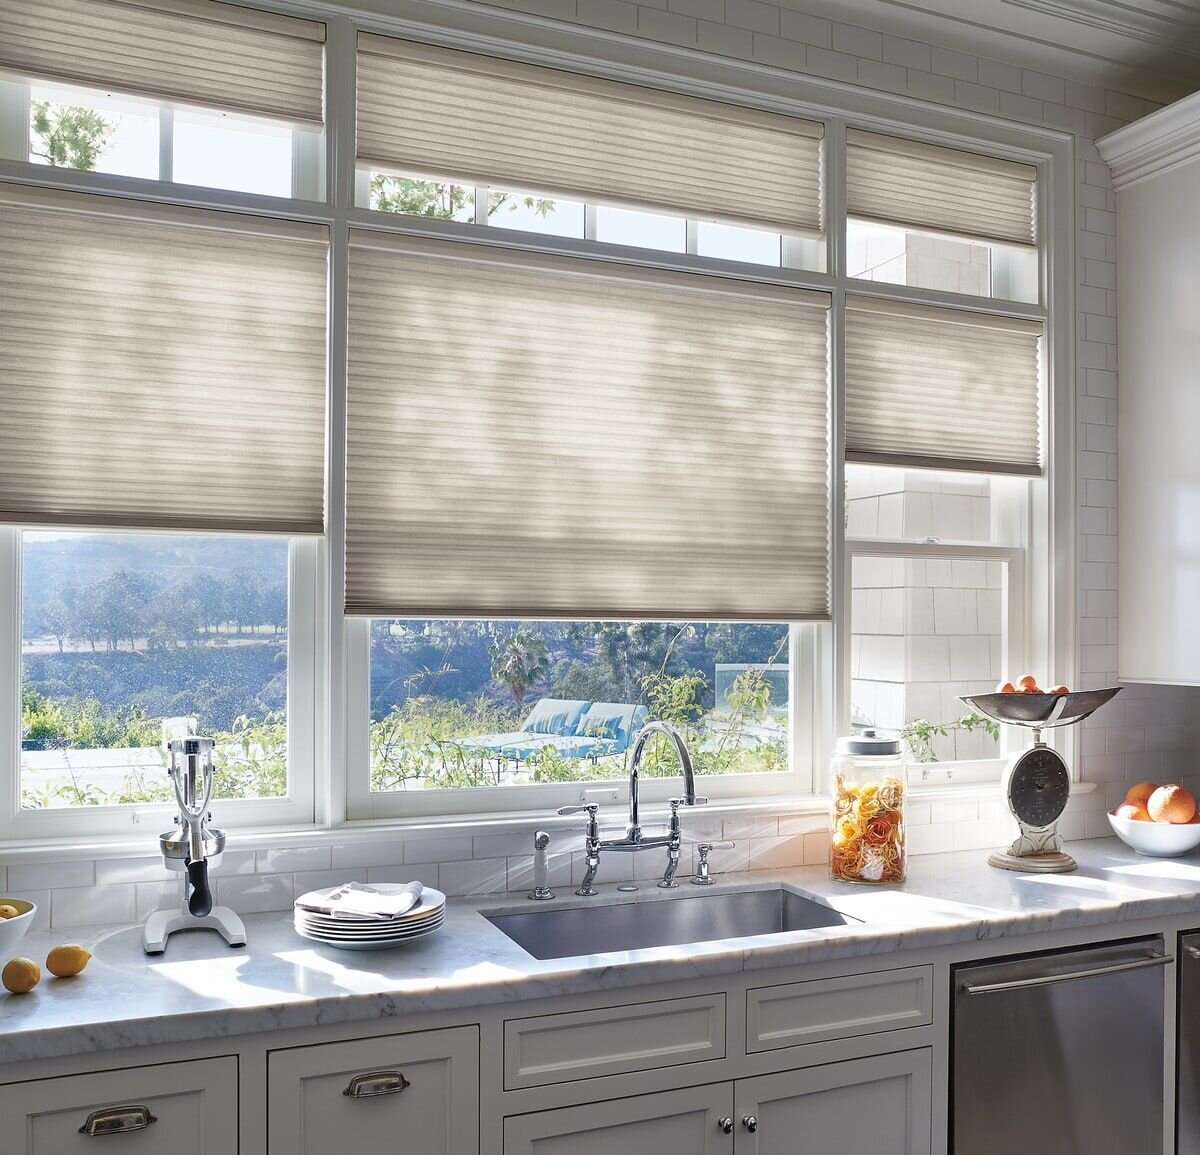 Kitchen shades for lighting and comfort